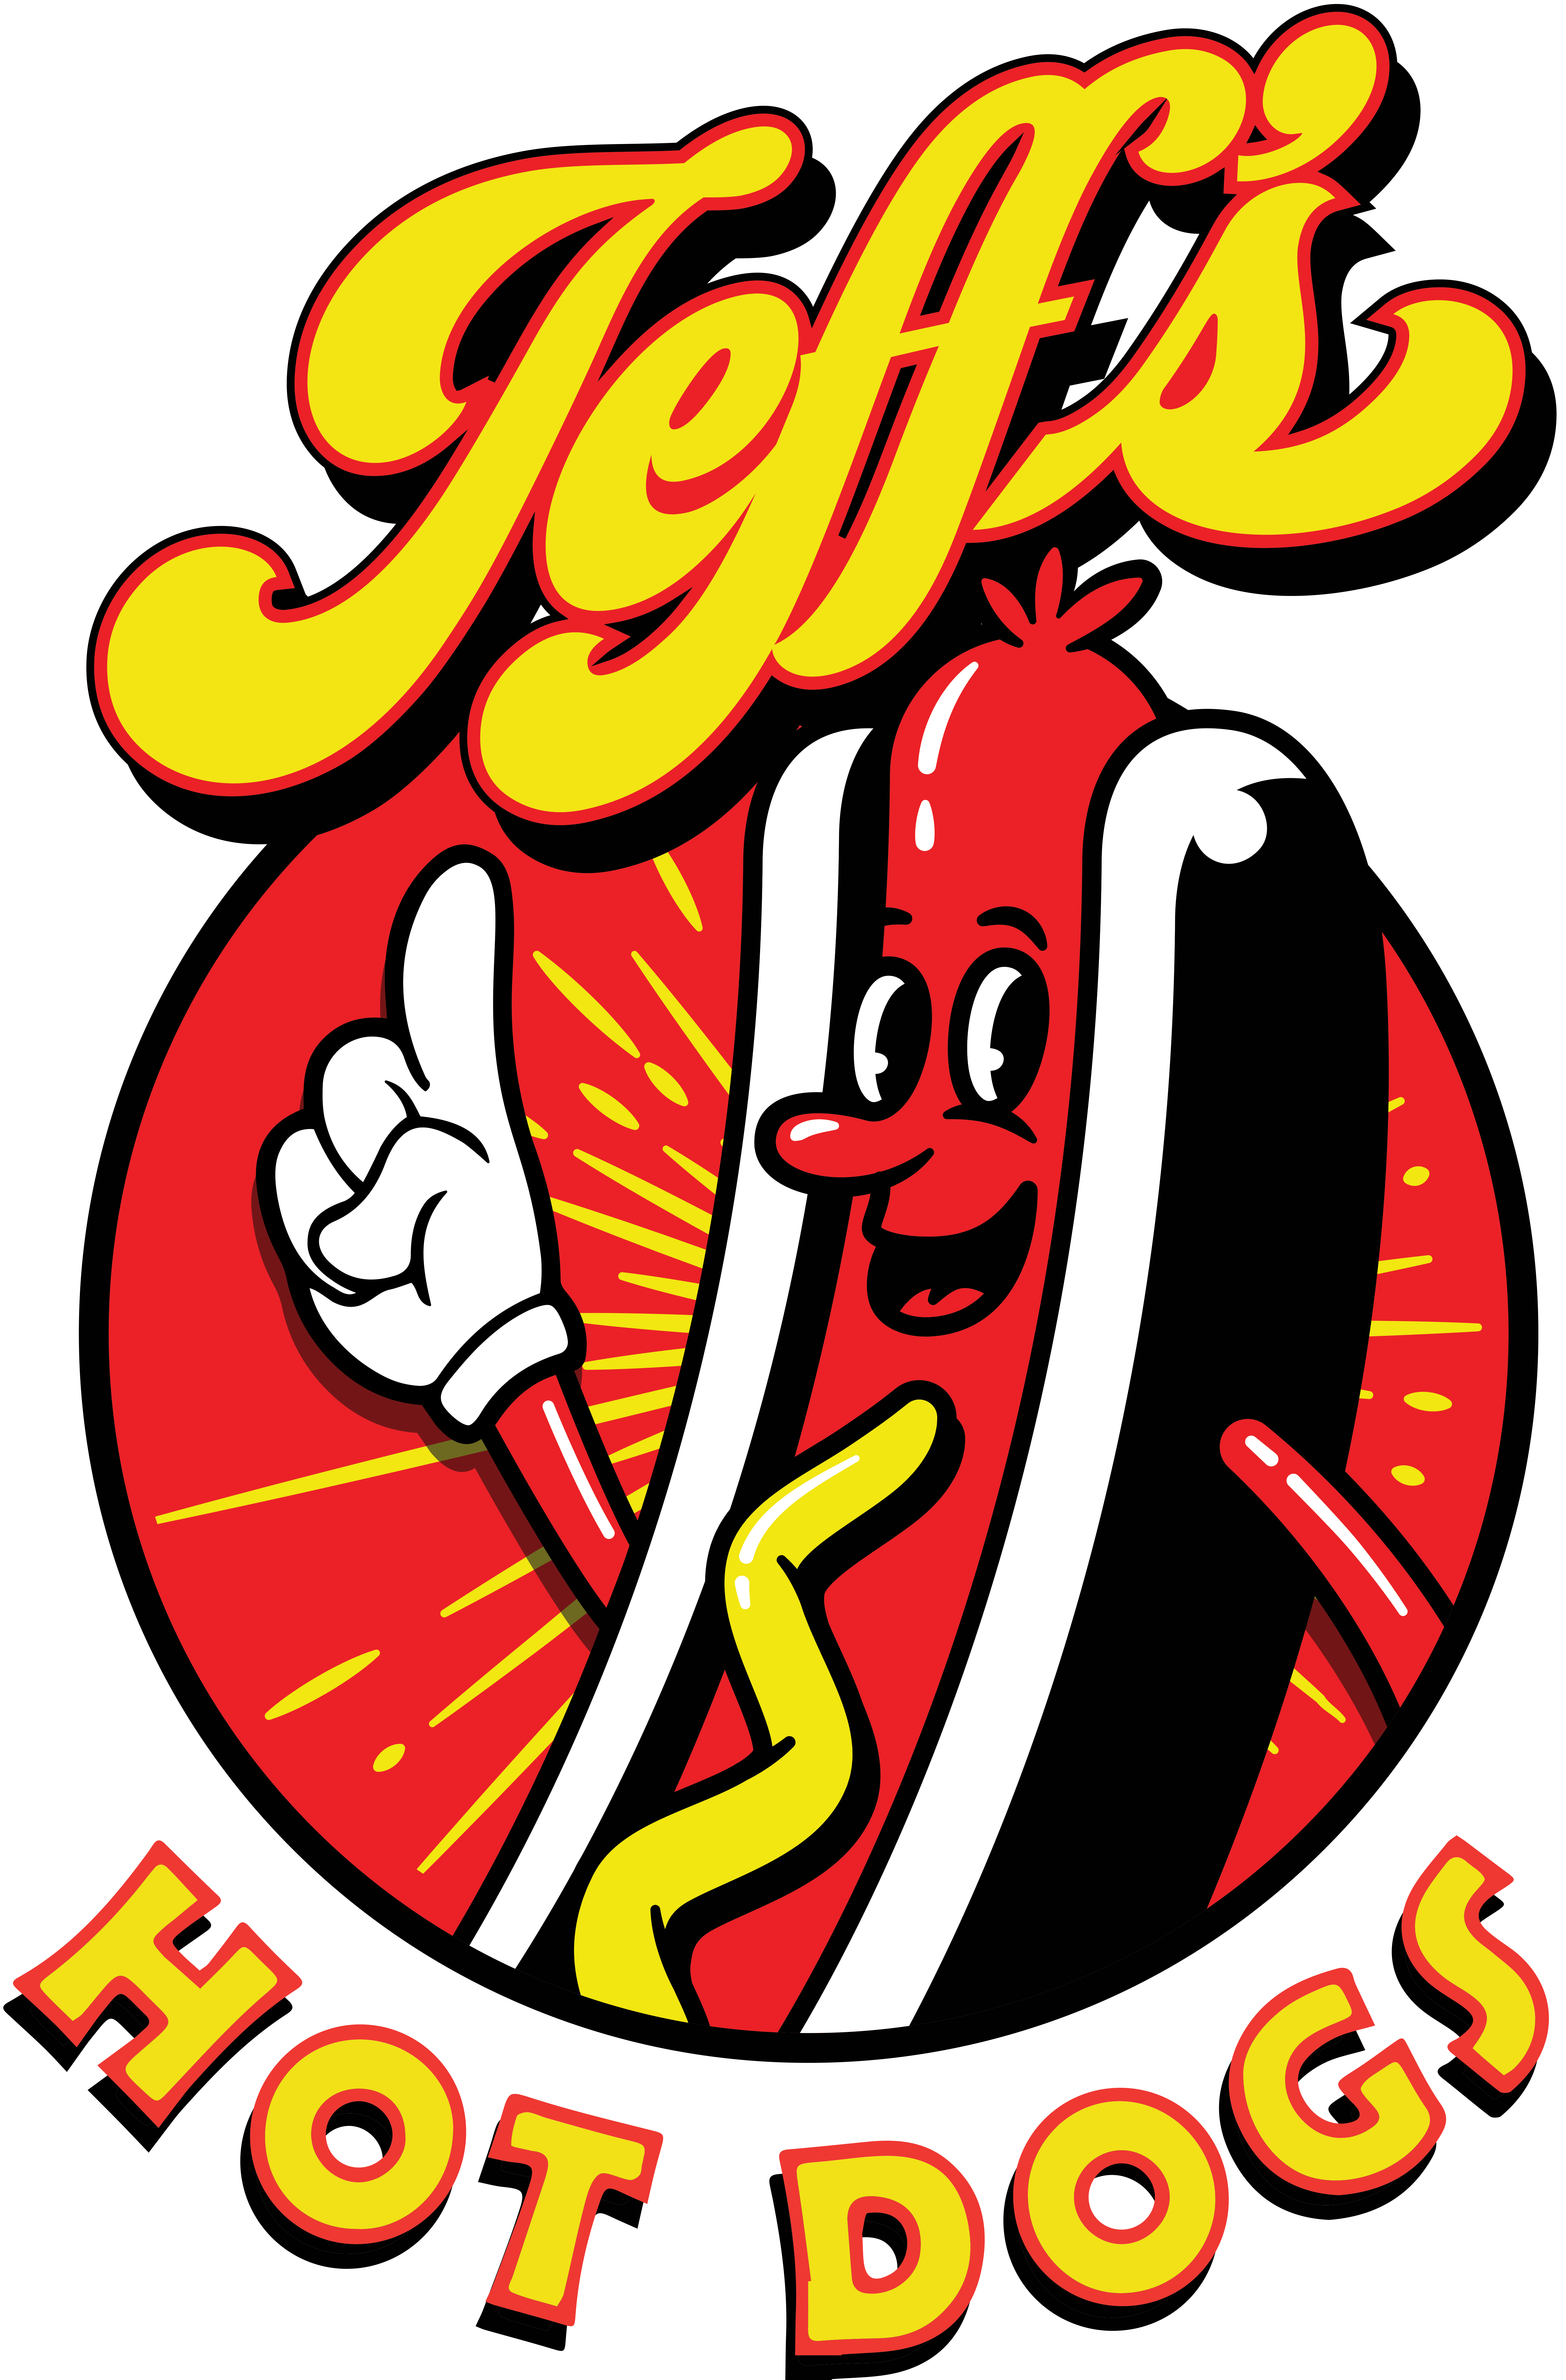 Jeff's Hot Dogs